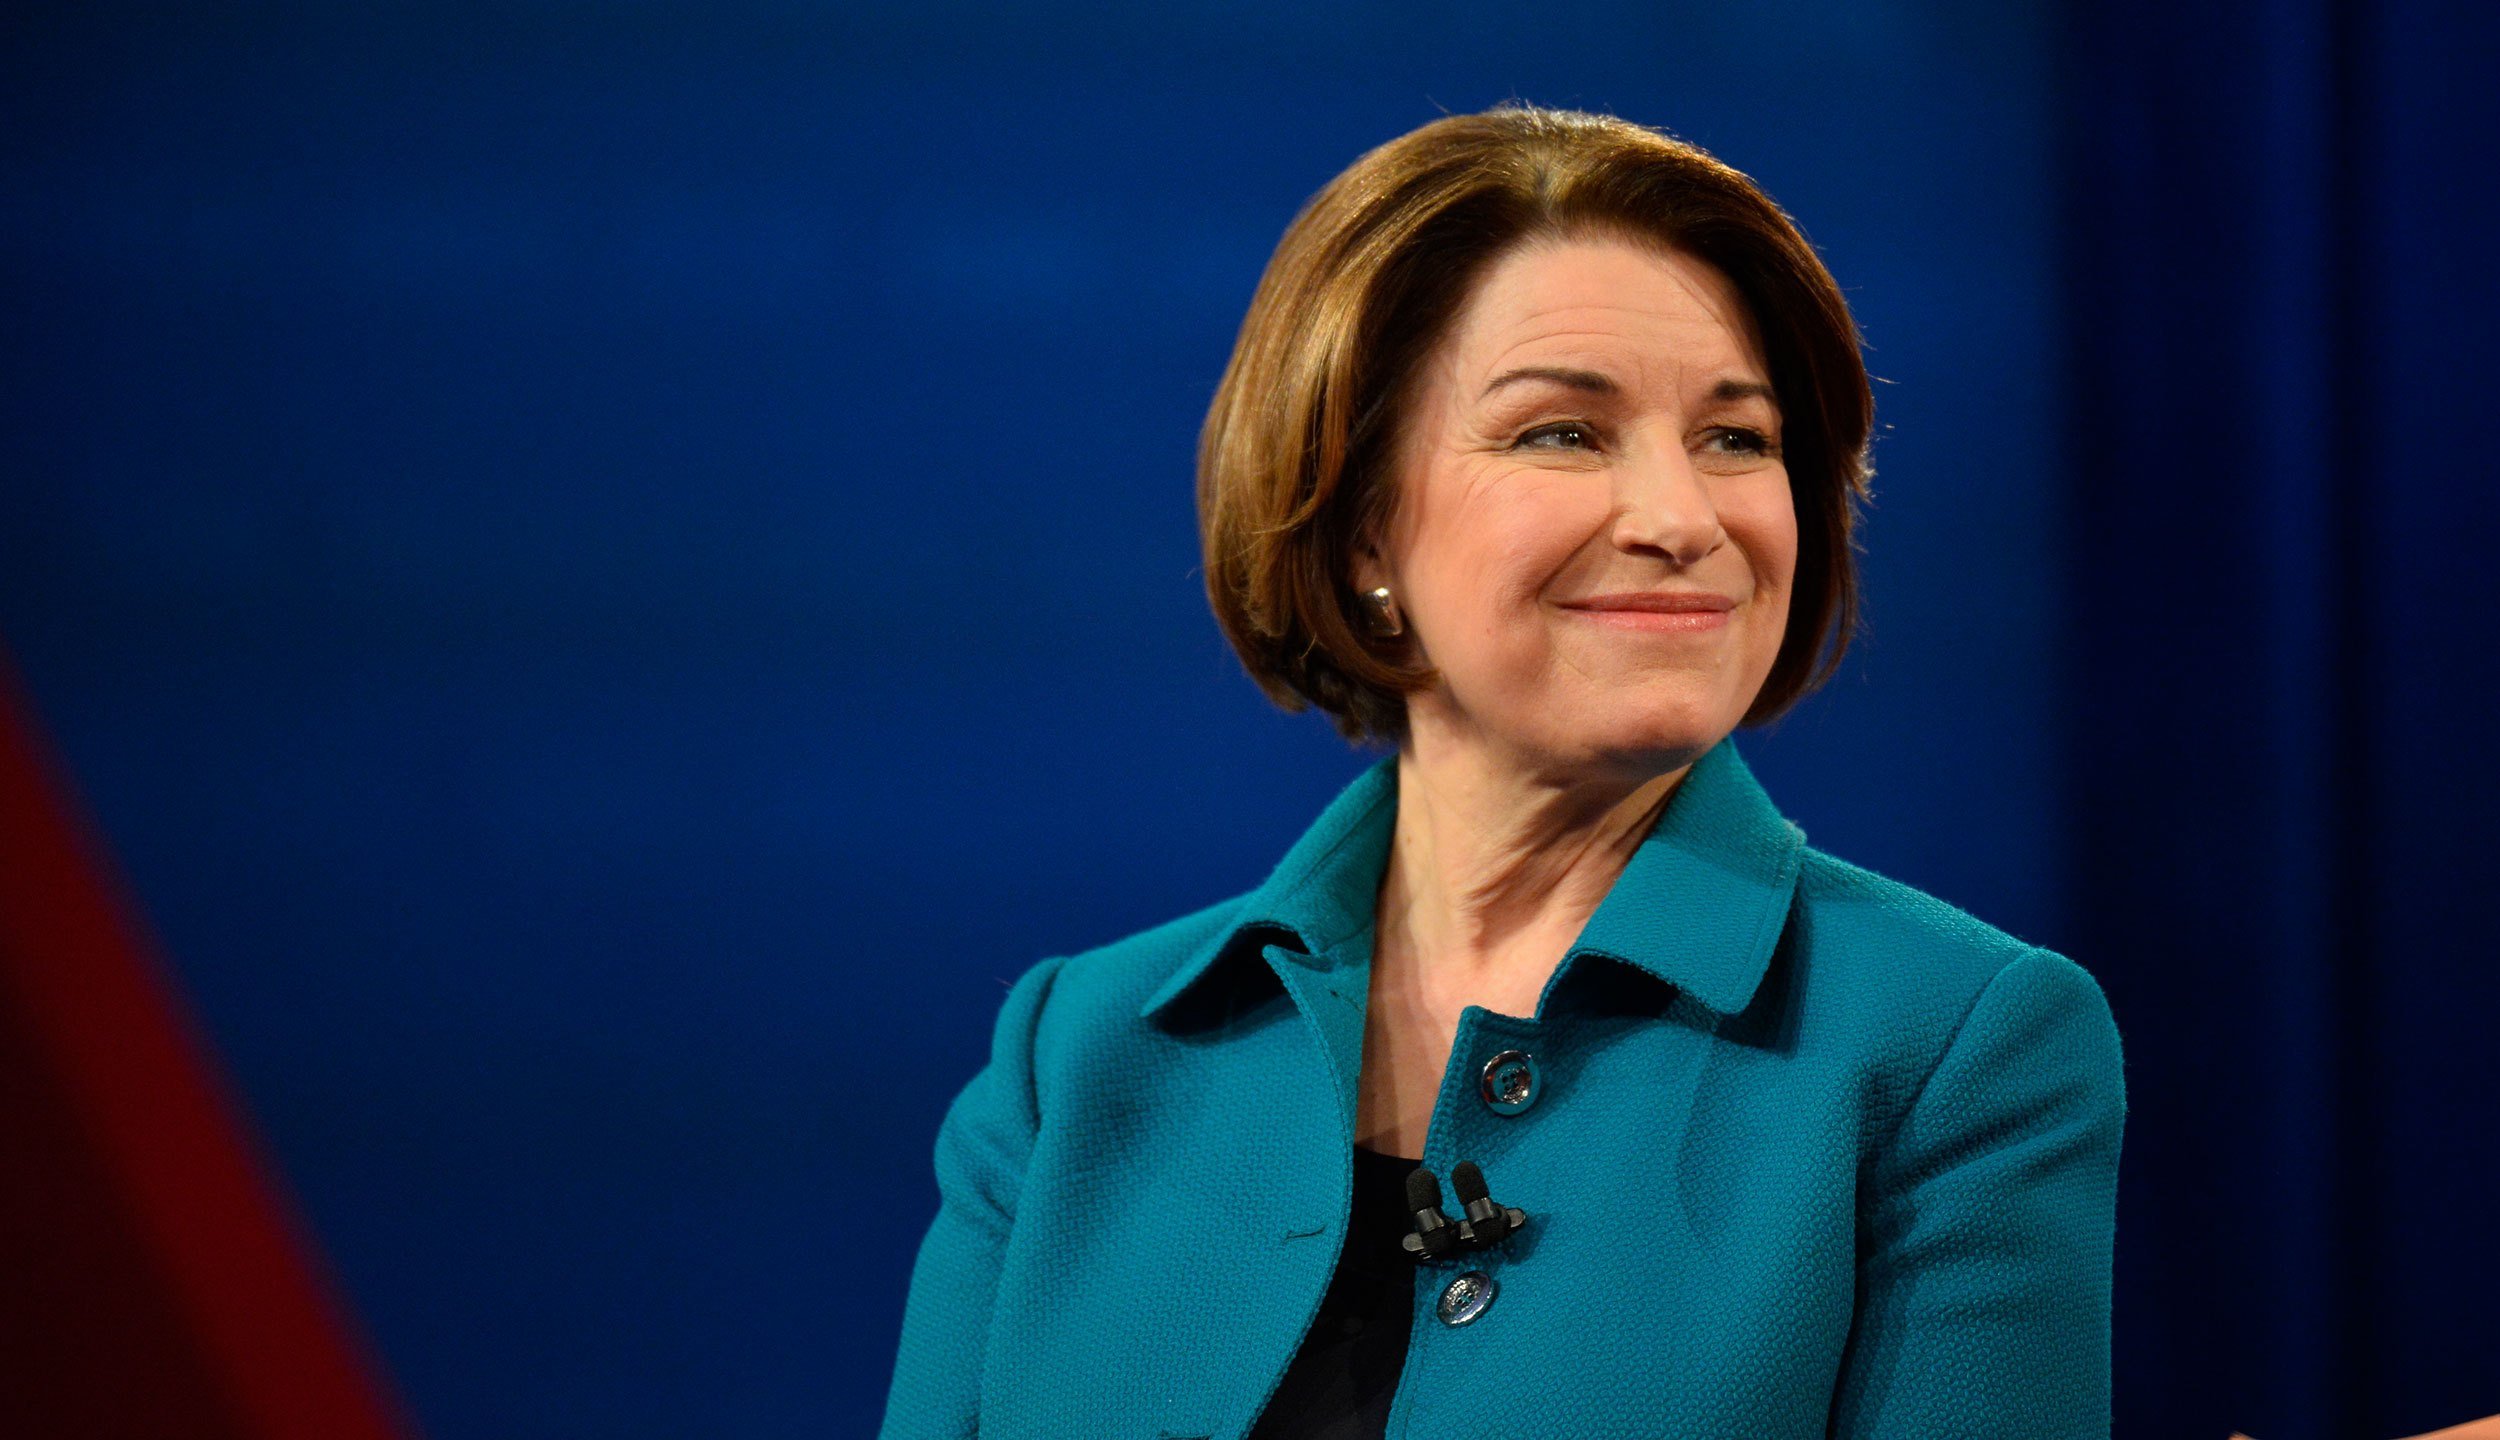 Photo goes with story about Klobuchar